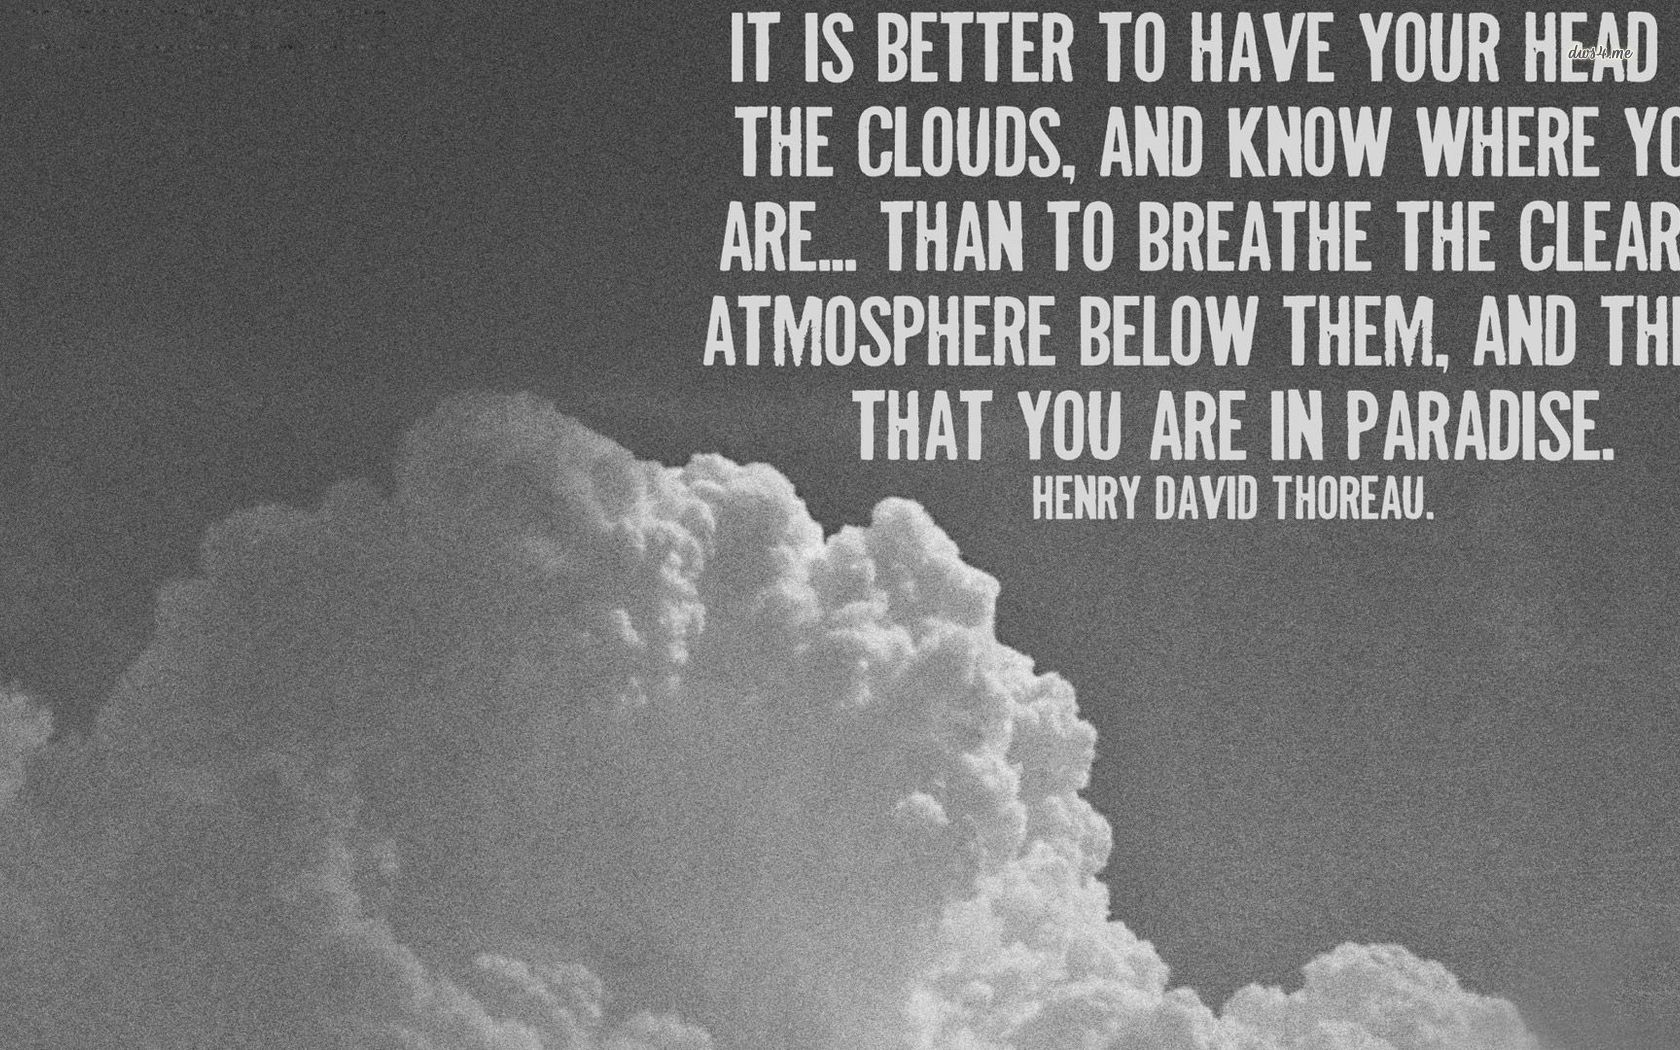 nature quotes henry david thoreau widescreen 2 hd nature quotes henry david thoreau widescreen 2 hd